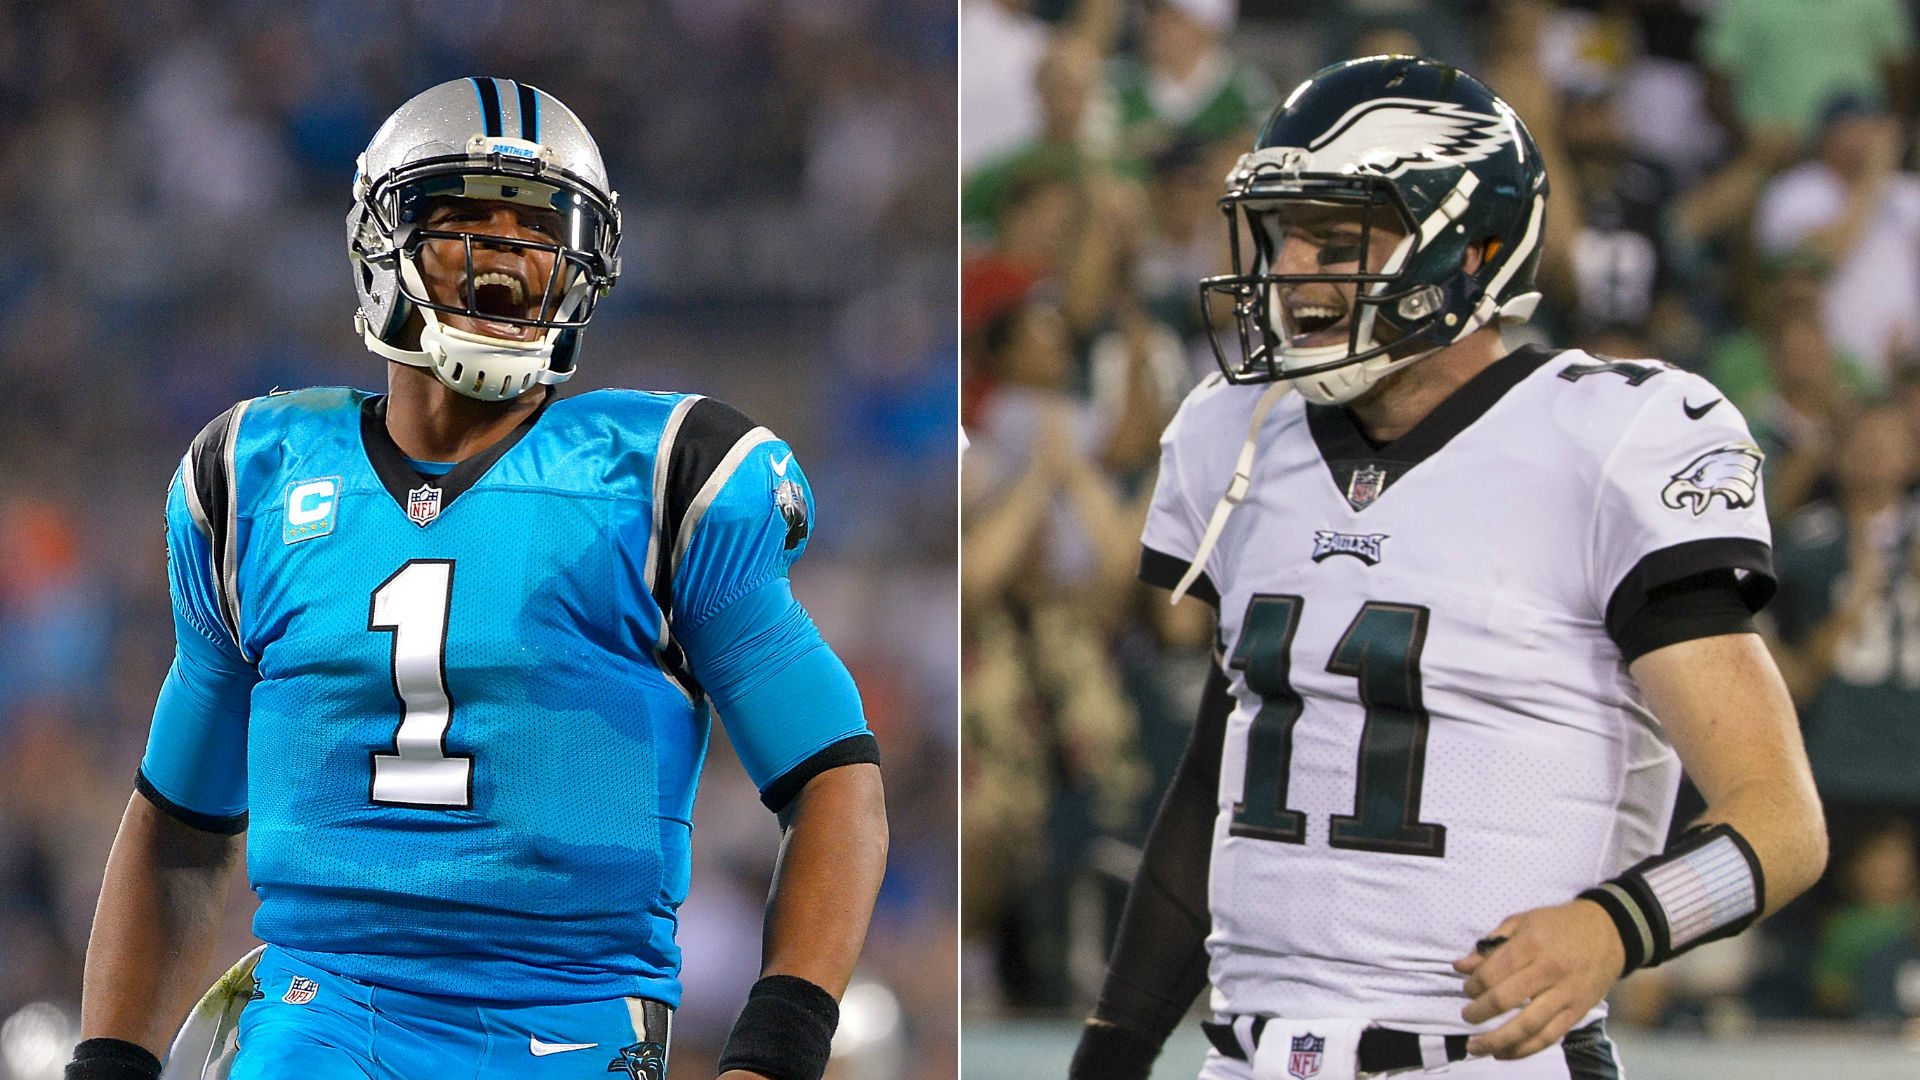 Eagles vs. Panthers: How to watch, live stream Thursday Night Football